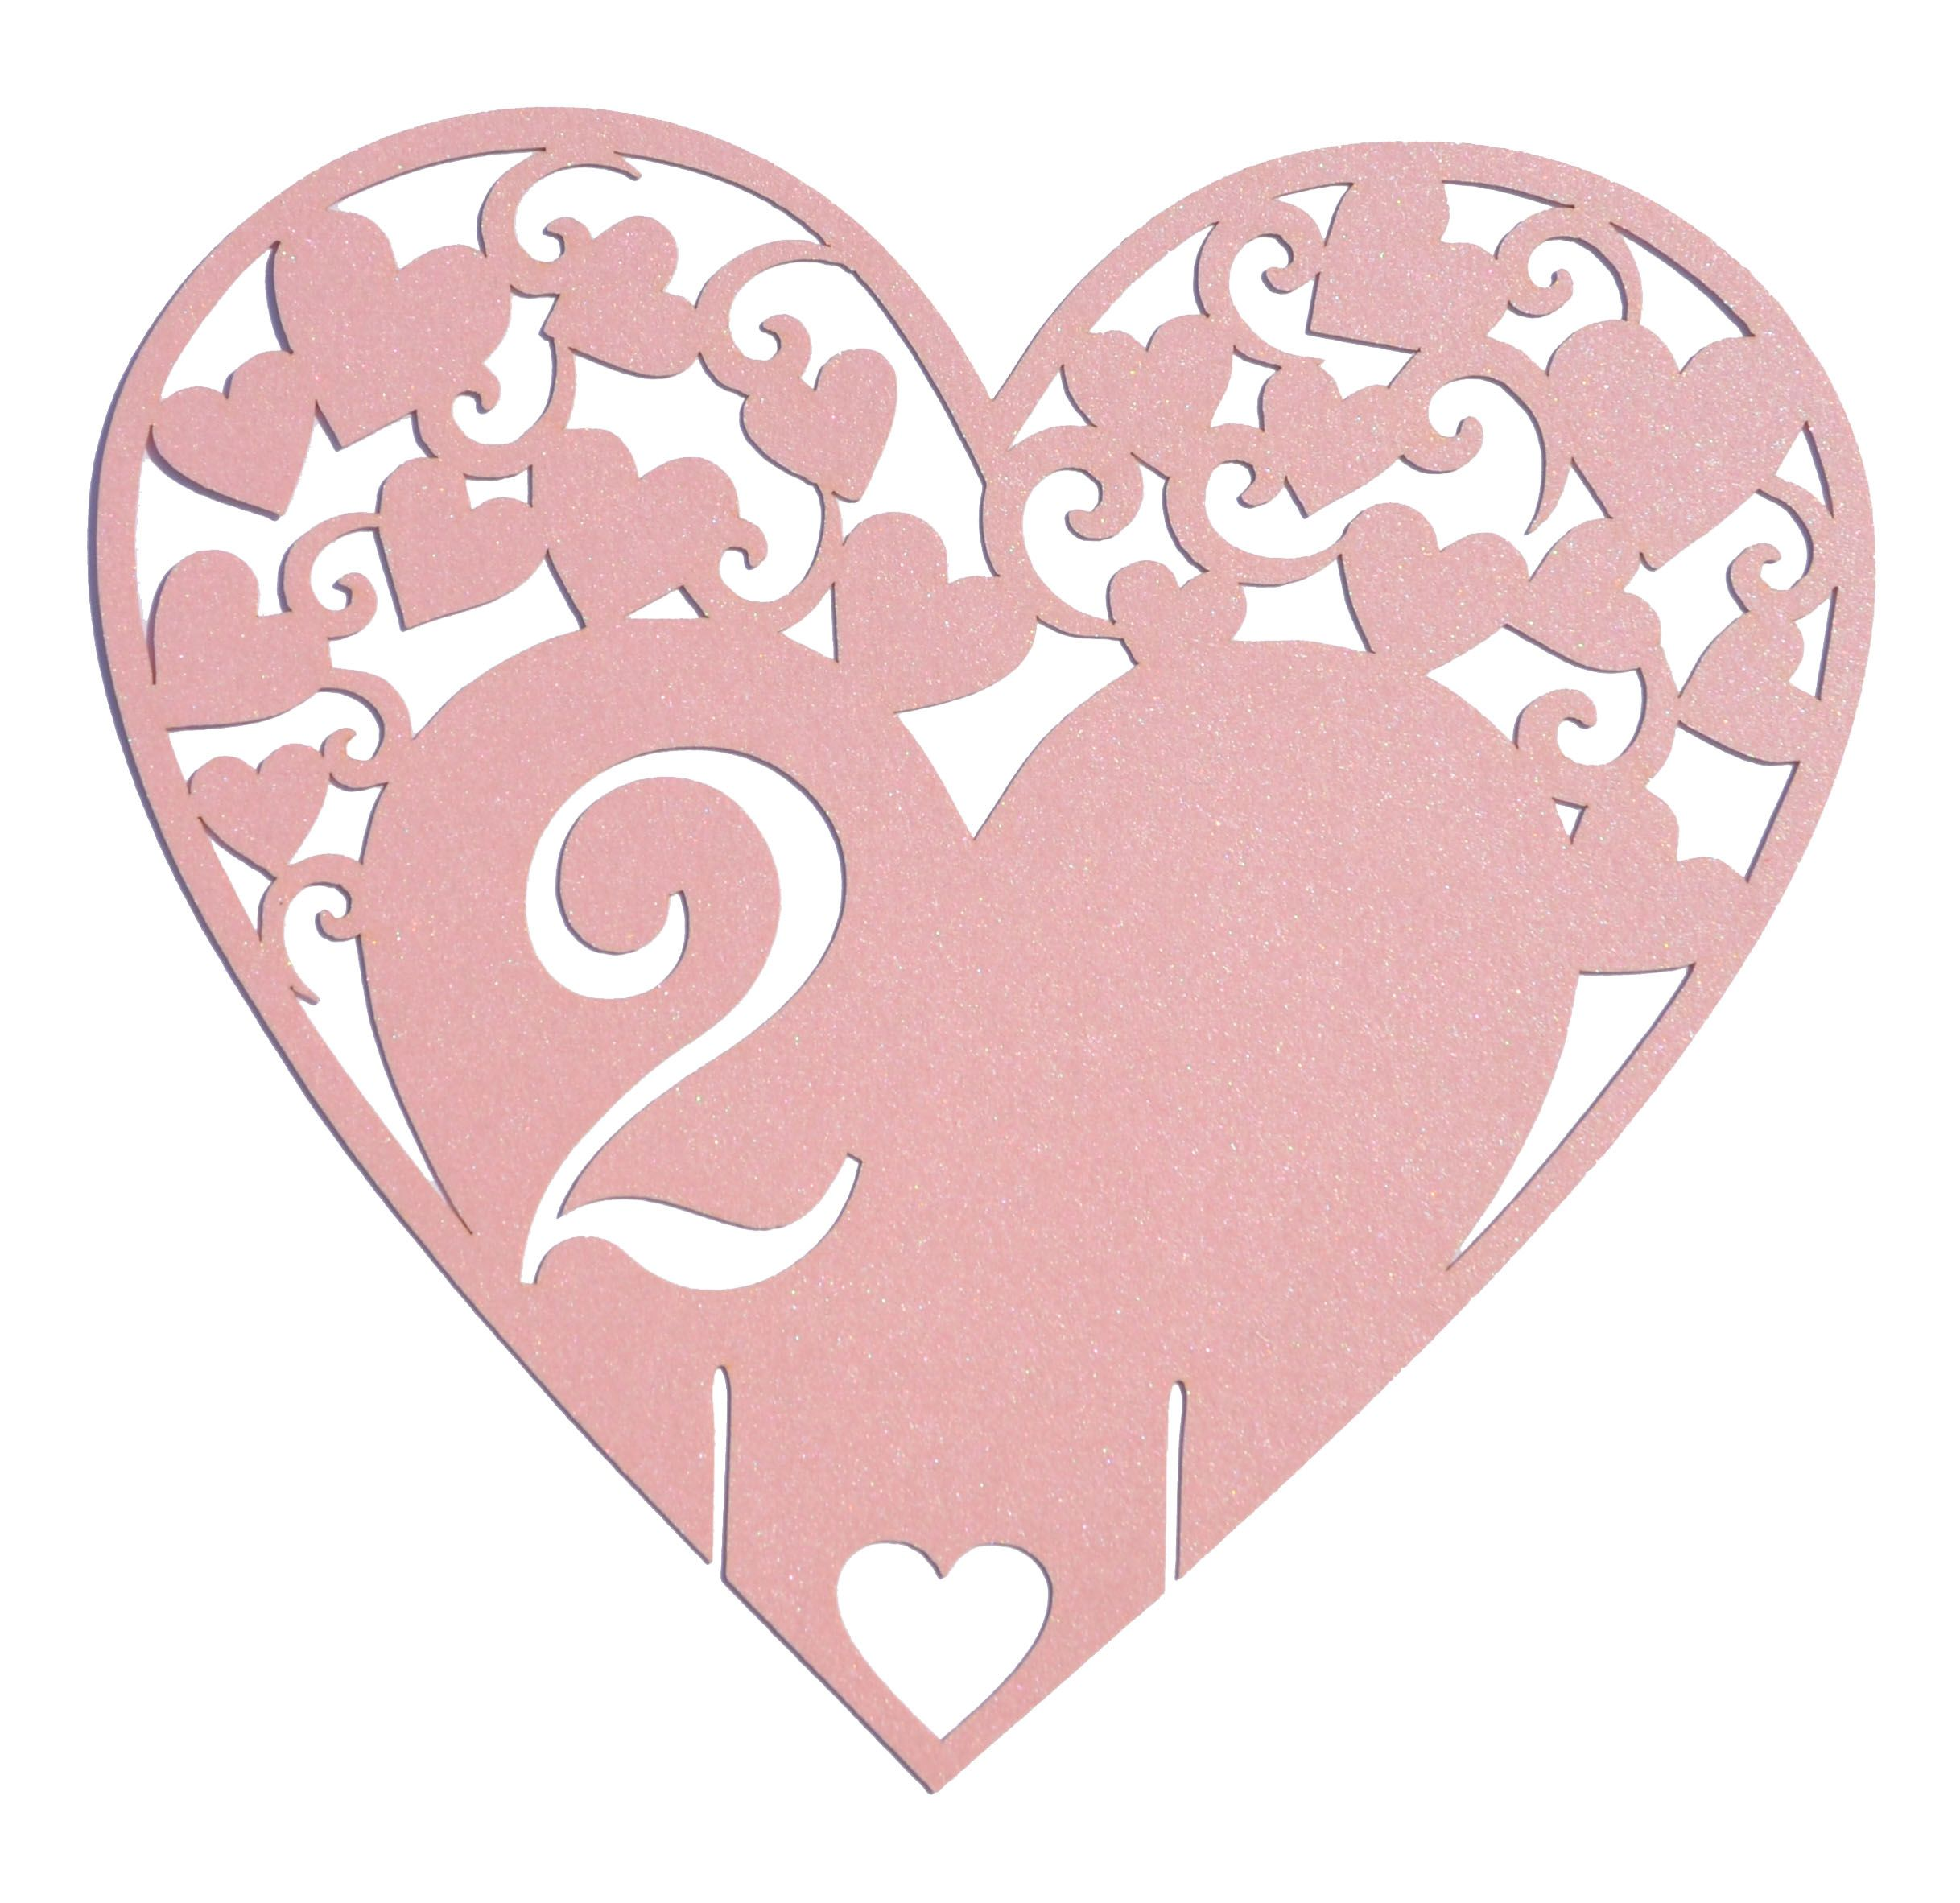 Cute lace laser cut heart wedding table number card from www.sew ...